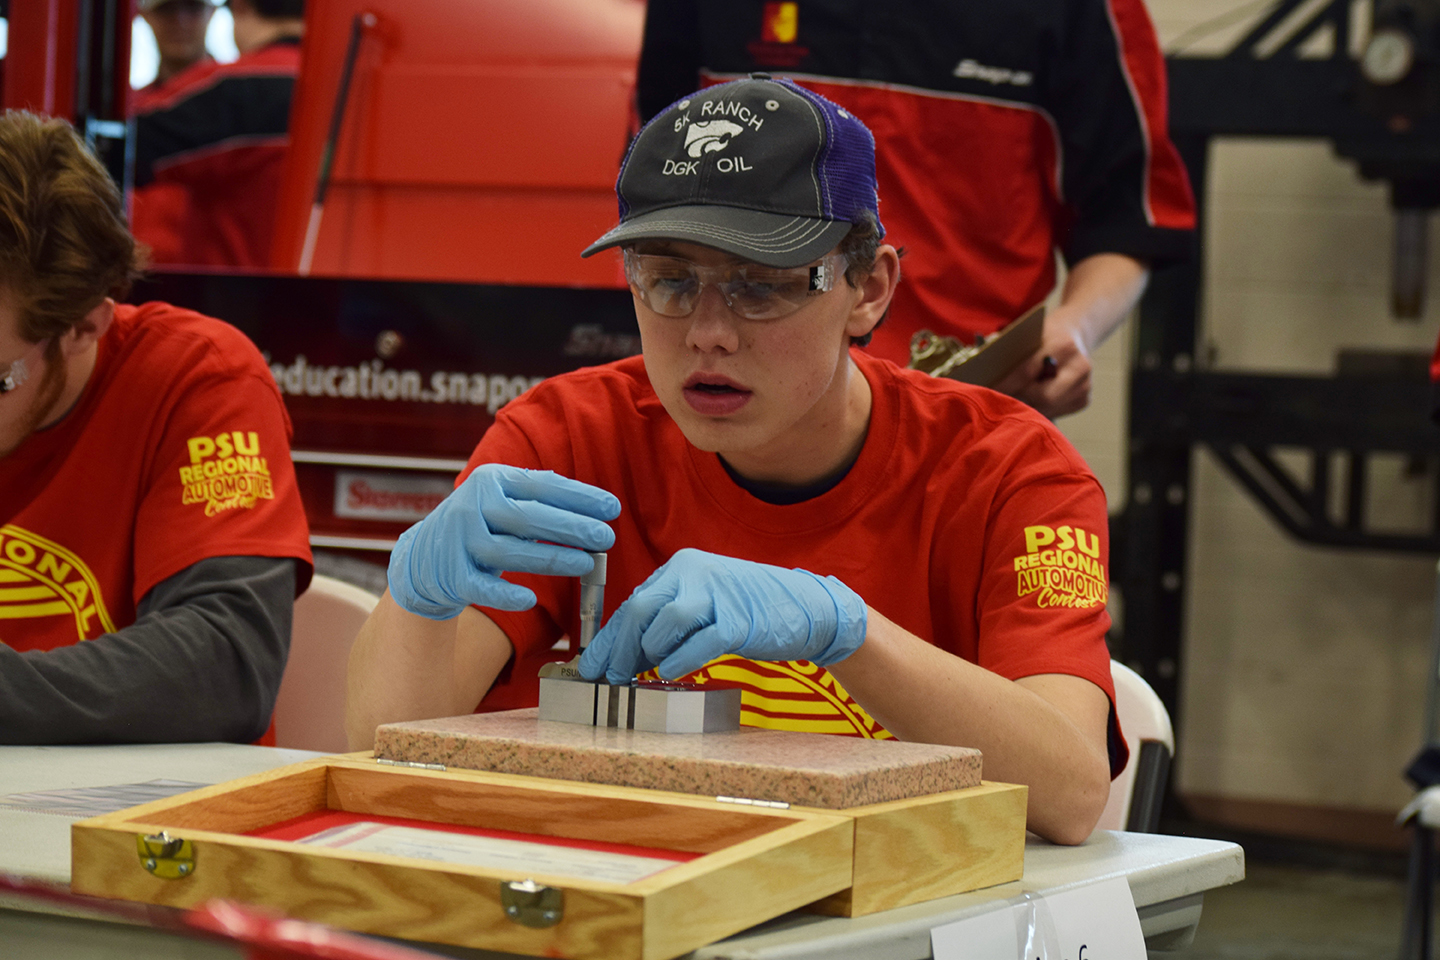 Junior Jacoby Kerr competes in the Skills USA regional automotive competition on Feb. 26. Kerr placed third in the eight stationed competition, with placing third Kerr won a tool box and a $500 scholarship to PSU.